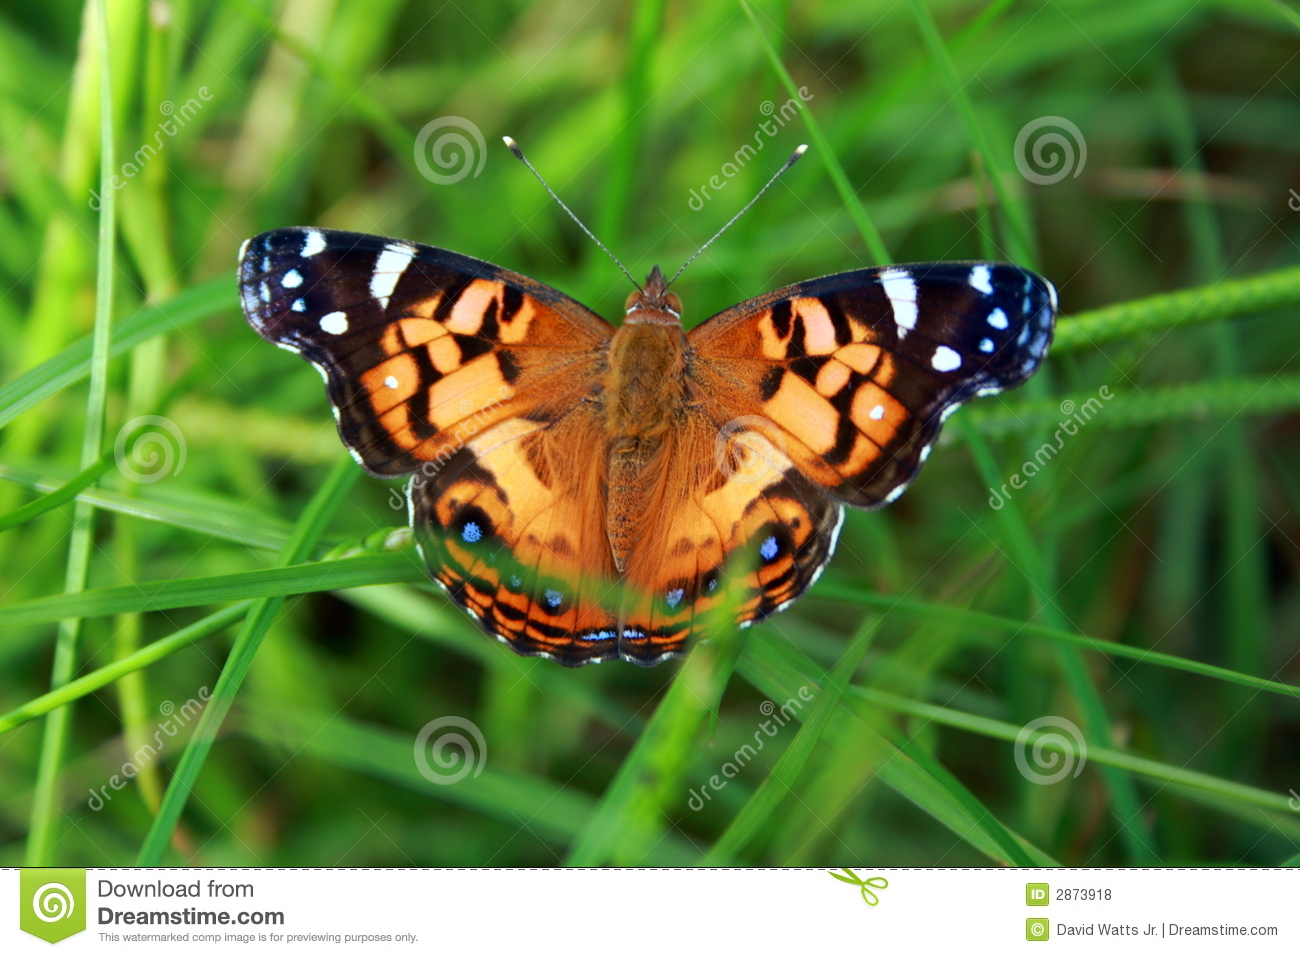 Colorful Butterfly in Grass